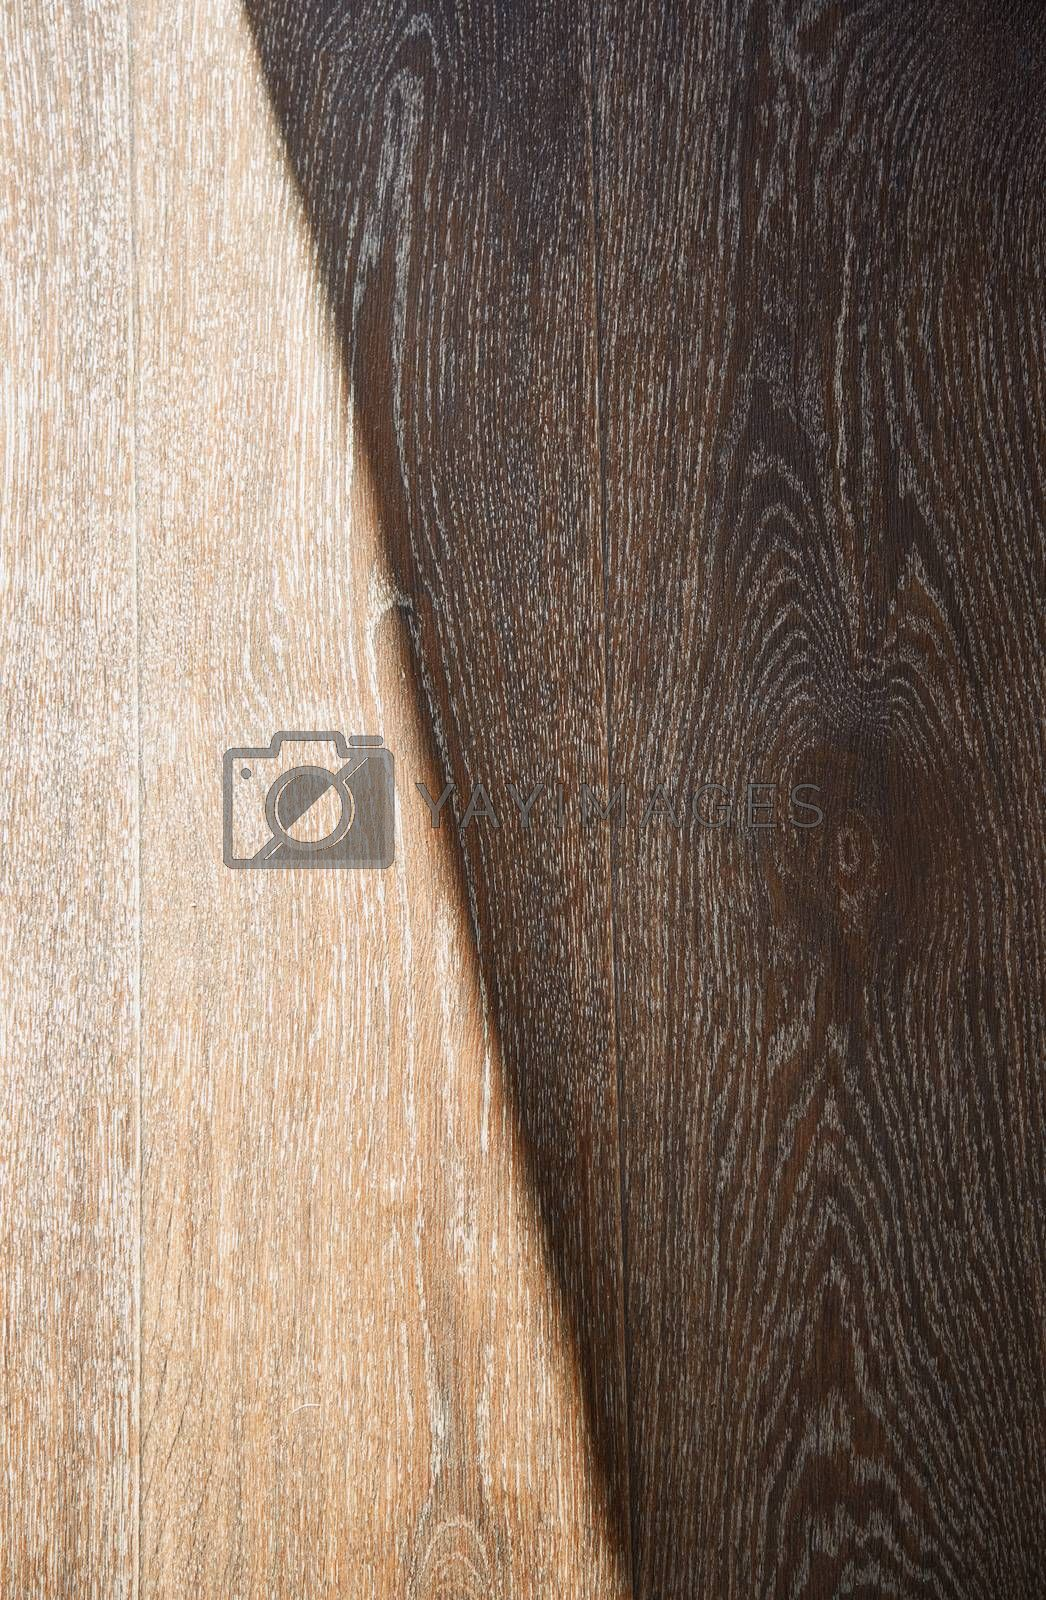 Wooden texture by Novic